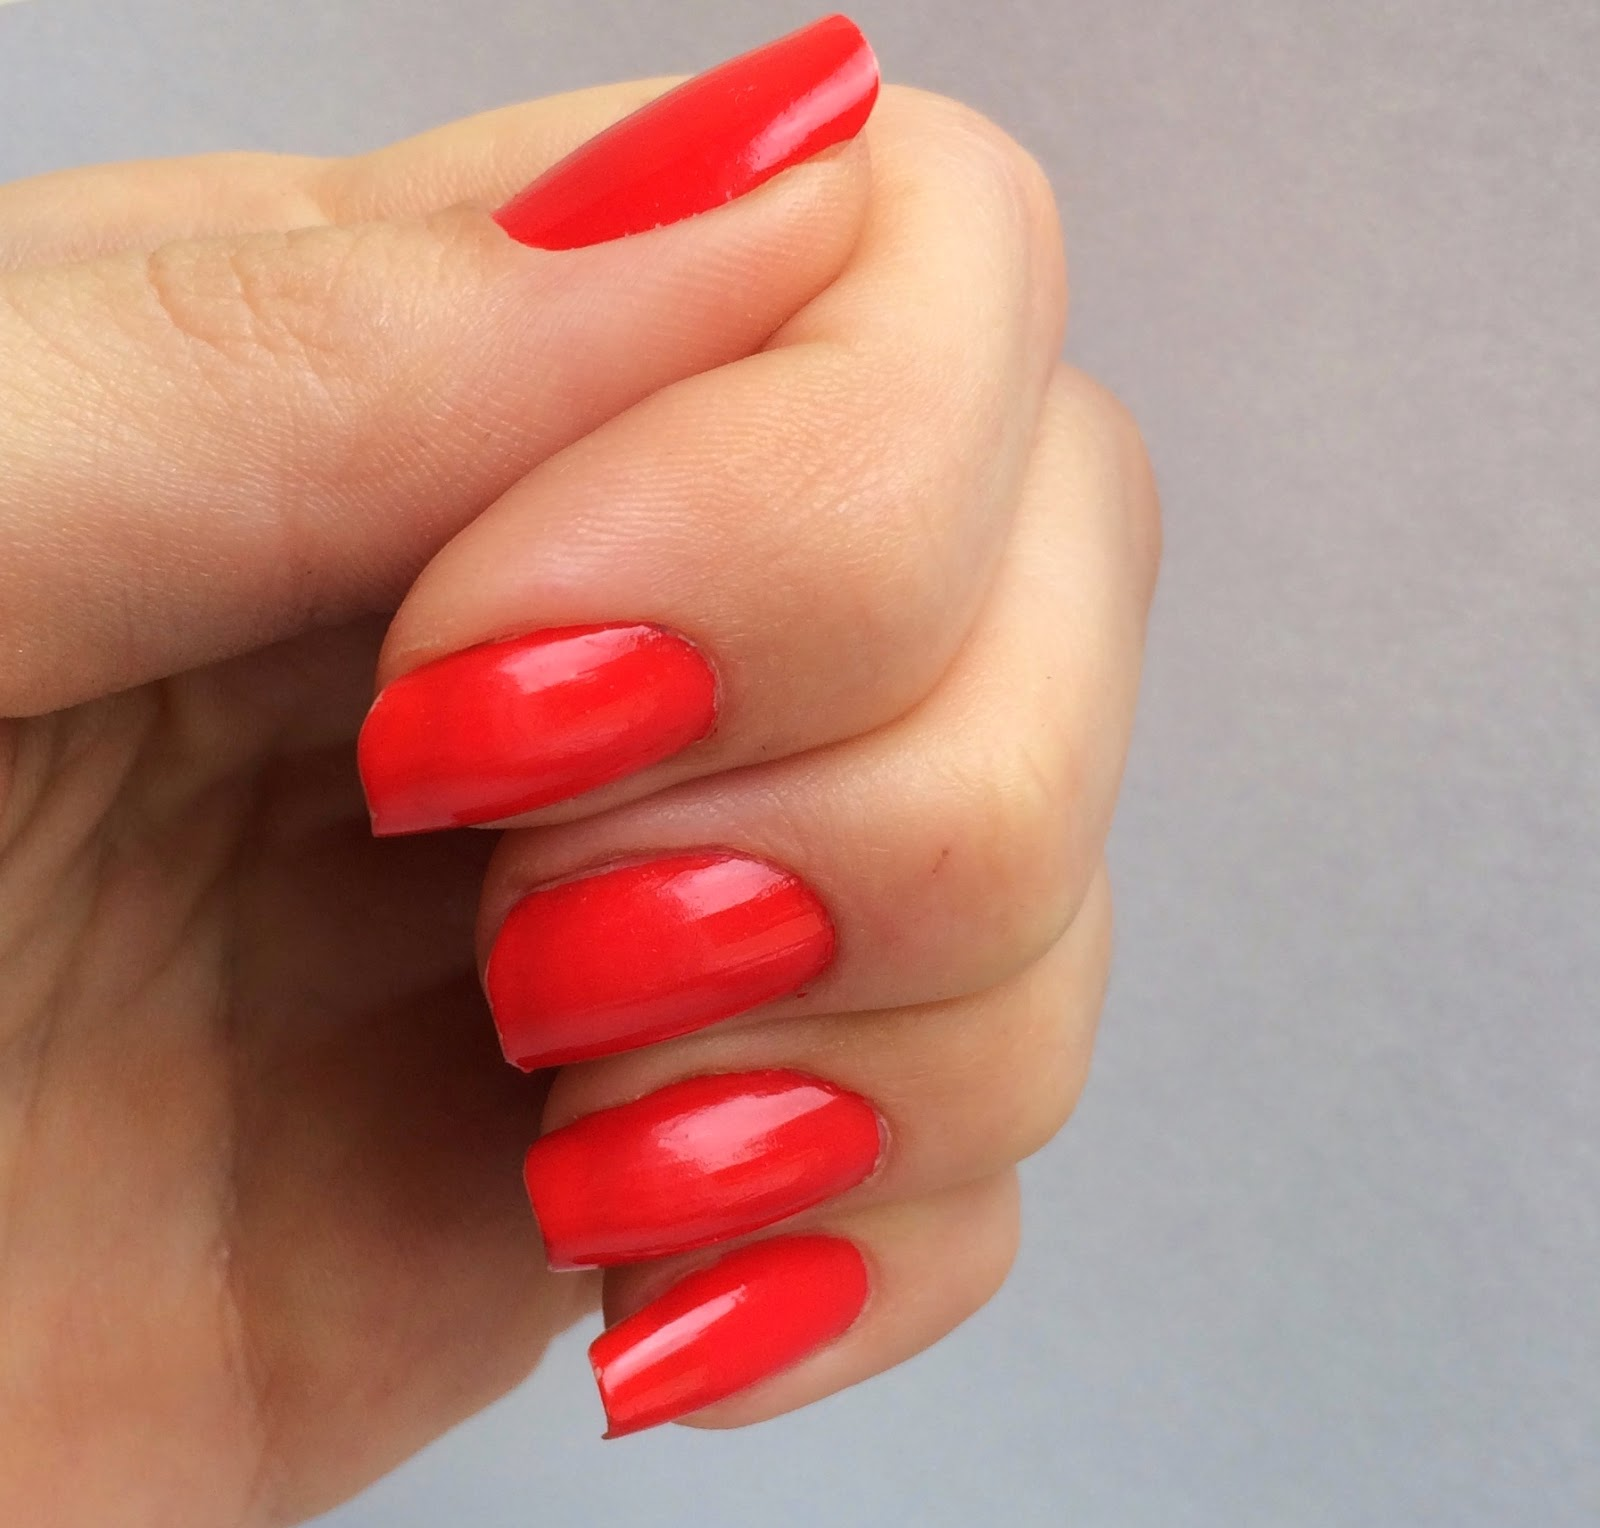 coral-nails-giveaway-photo-jenn-ic